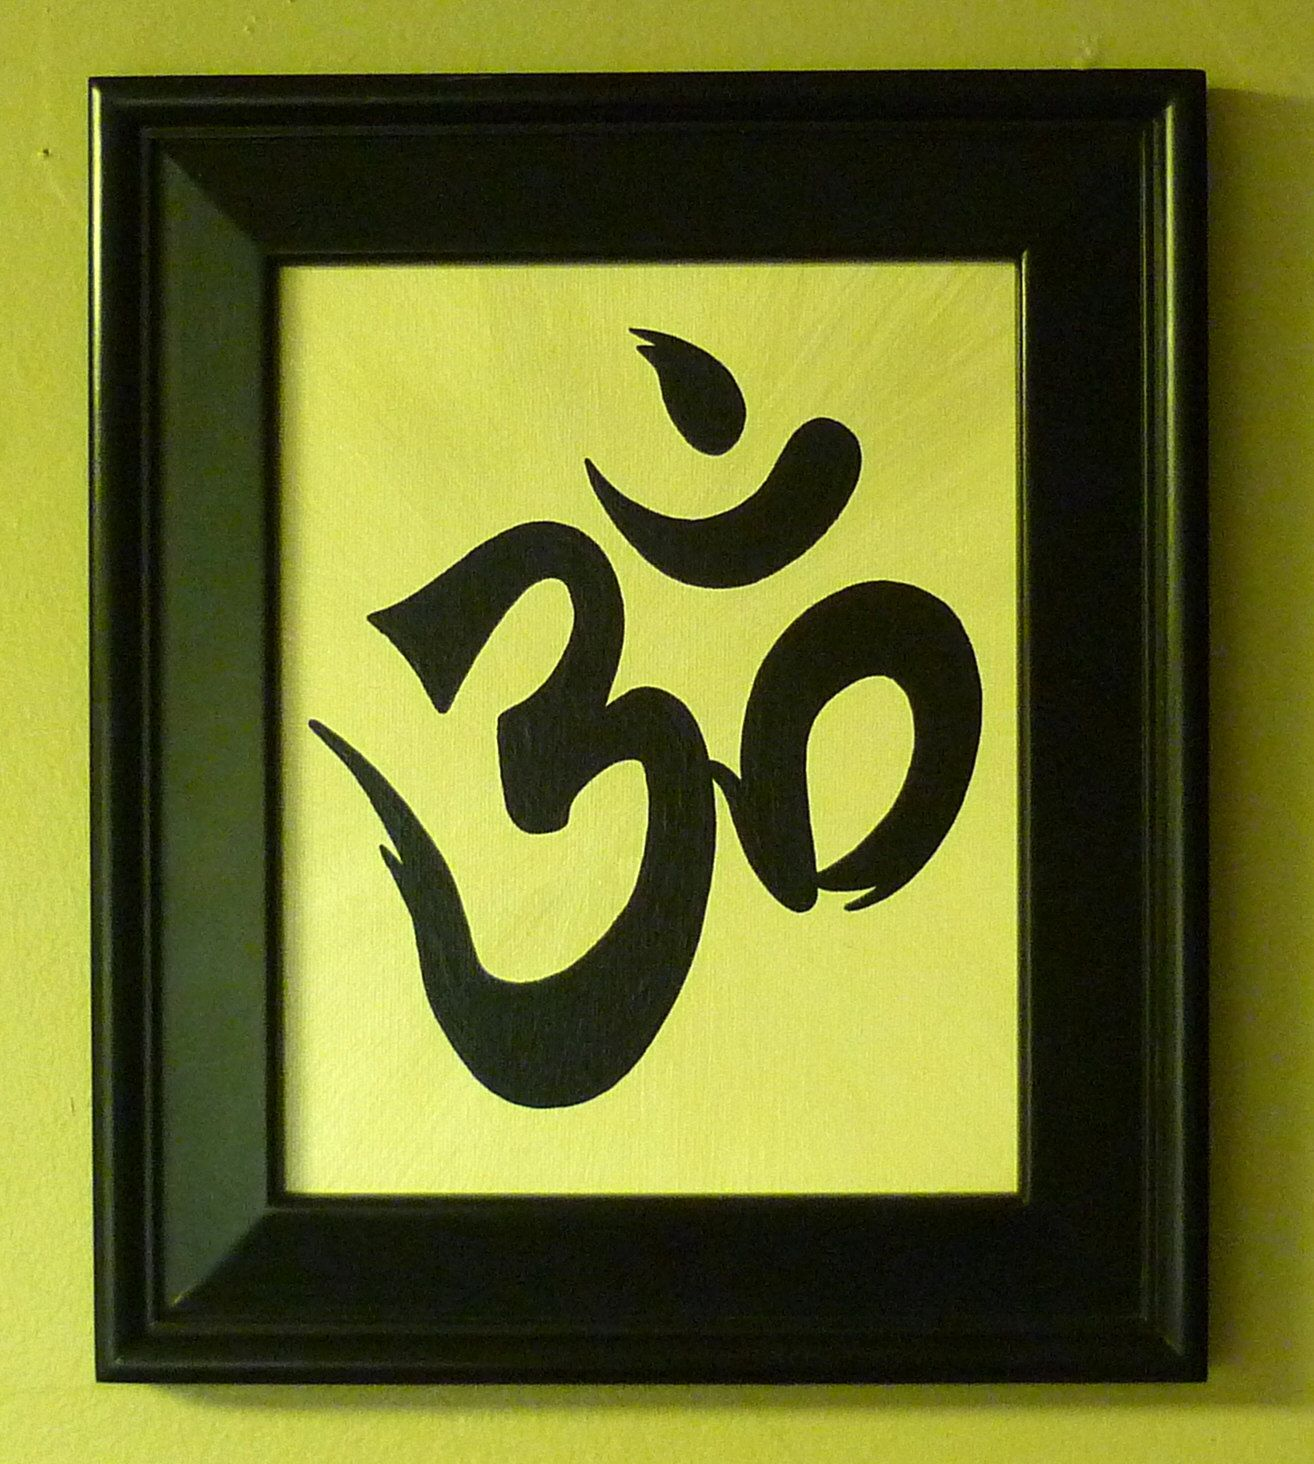 buddha wall art | Paint/Art | Pinterest | Buddha, Buddhists and Walls